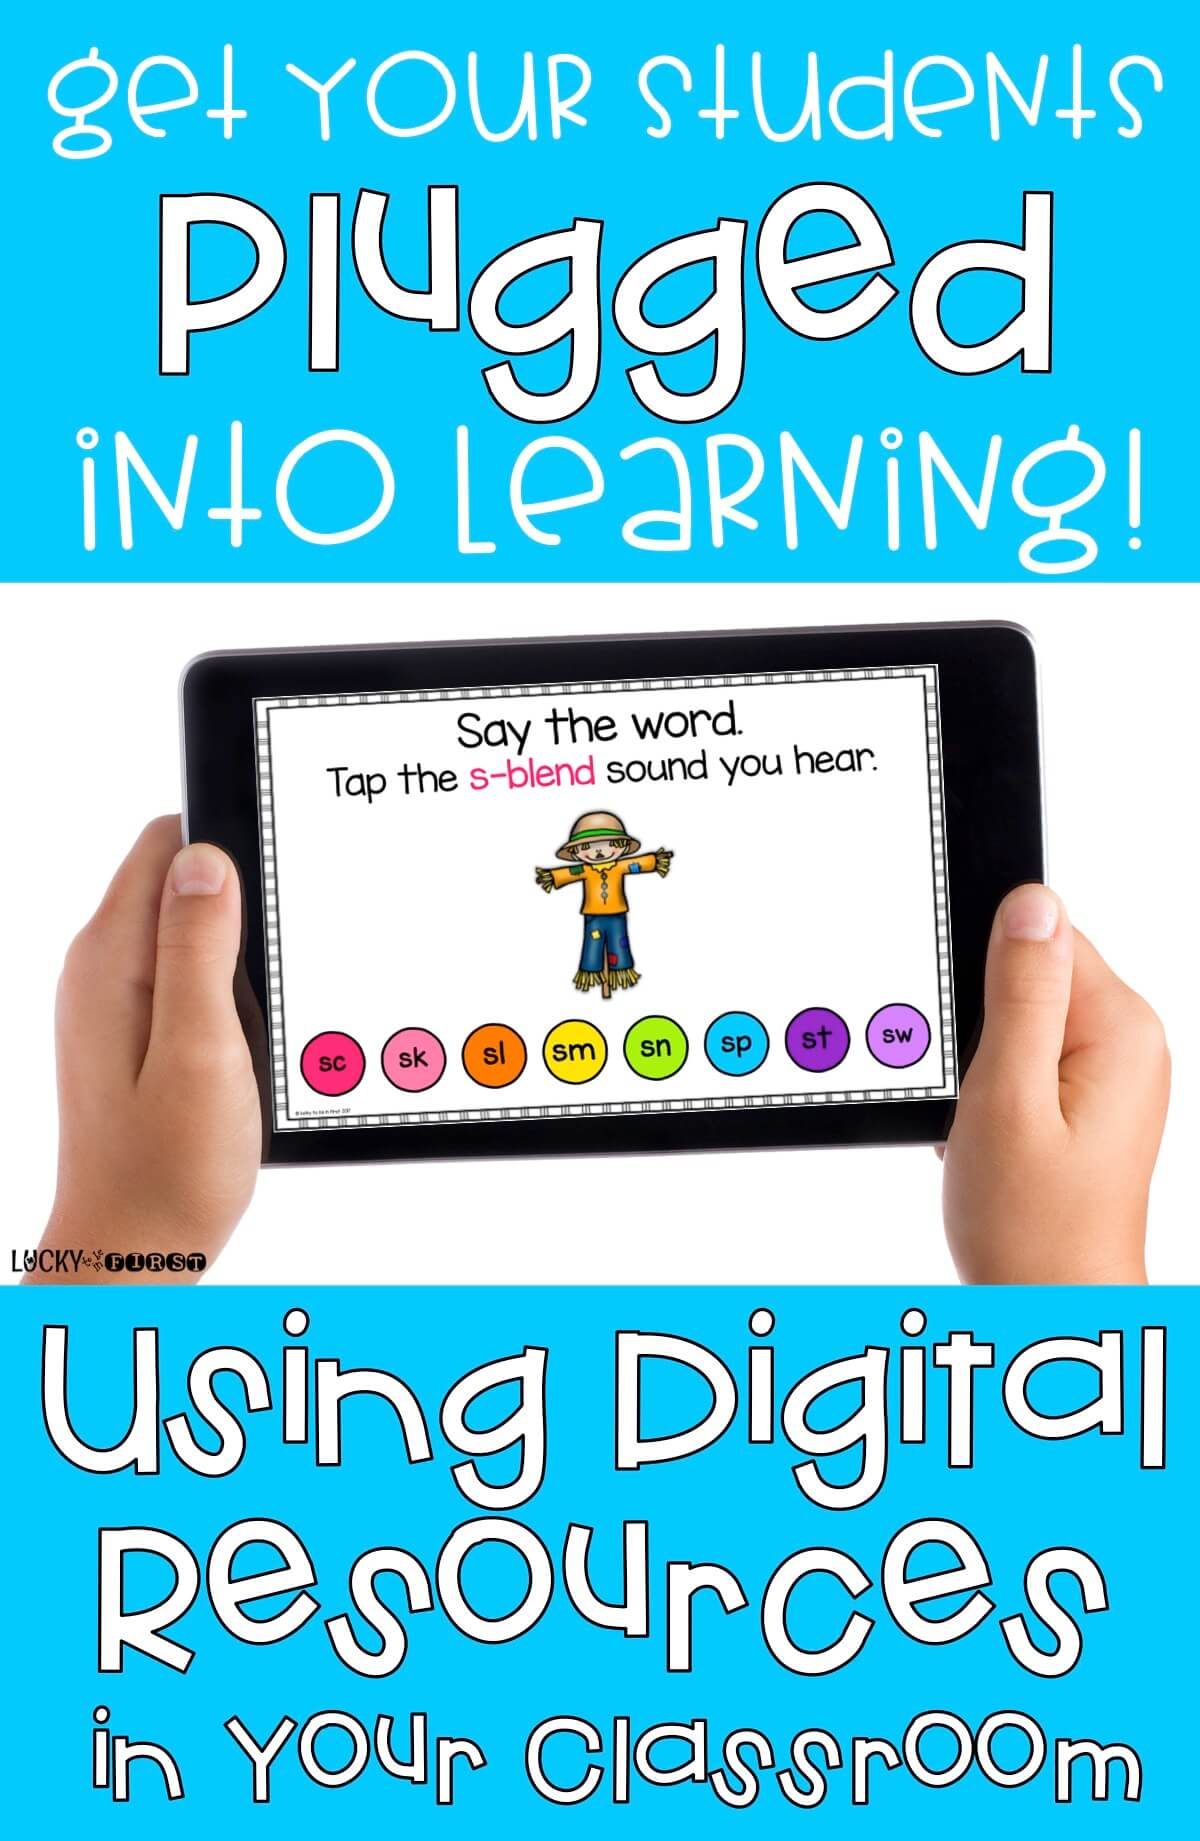 Get Your Students Plugged into Learning! Learn how to use digital activities in the classroom to review important skills!